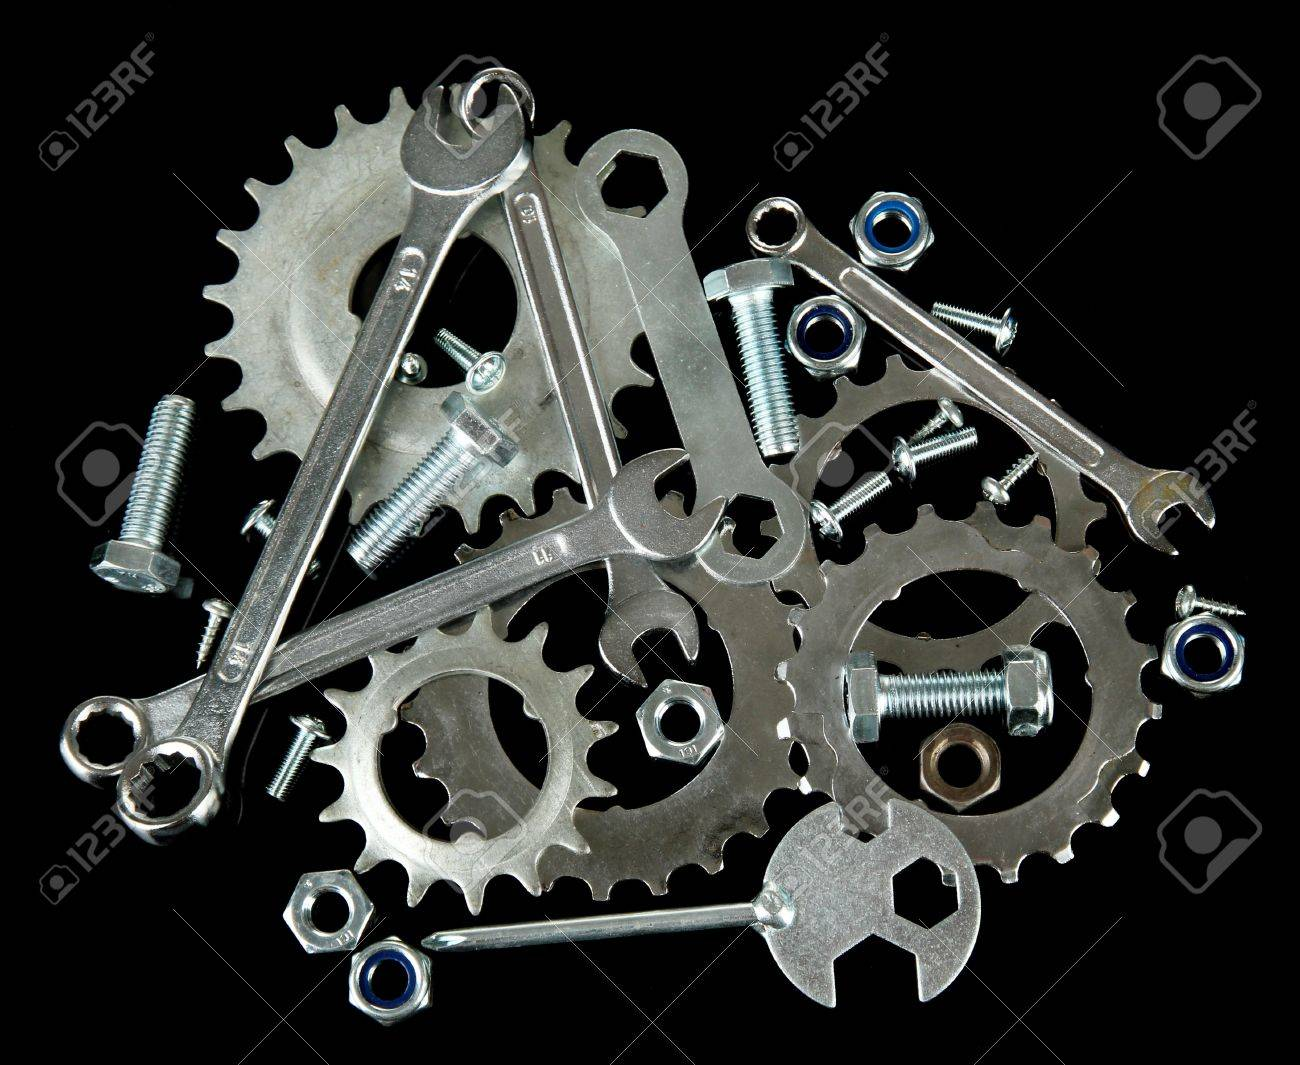 Machine gear, metal cogwheels, nuts and bolts isolated on black Stock Photo - 16772418